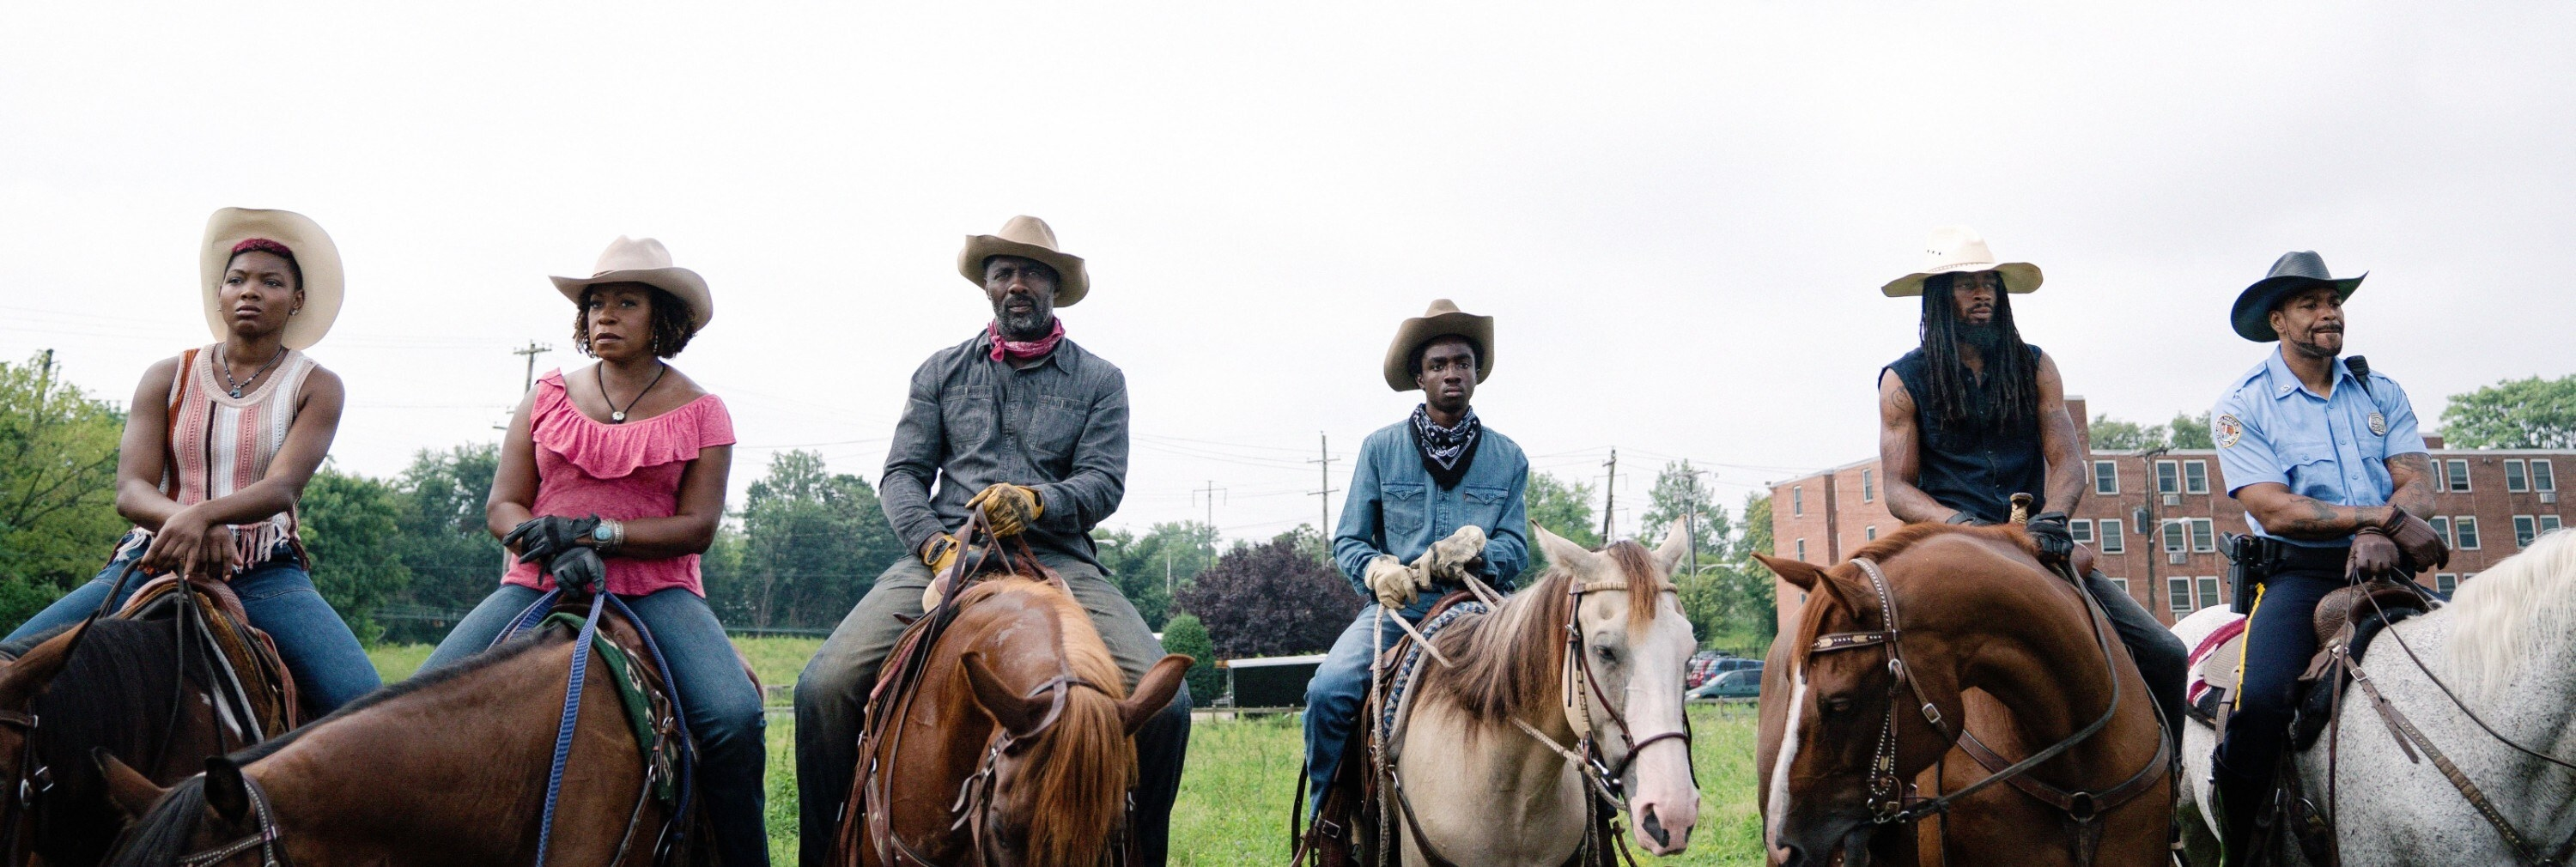 Cowboys and cowgirls sit on their horses side-by-side